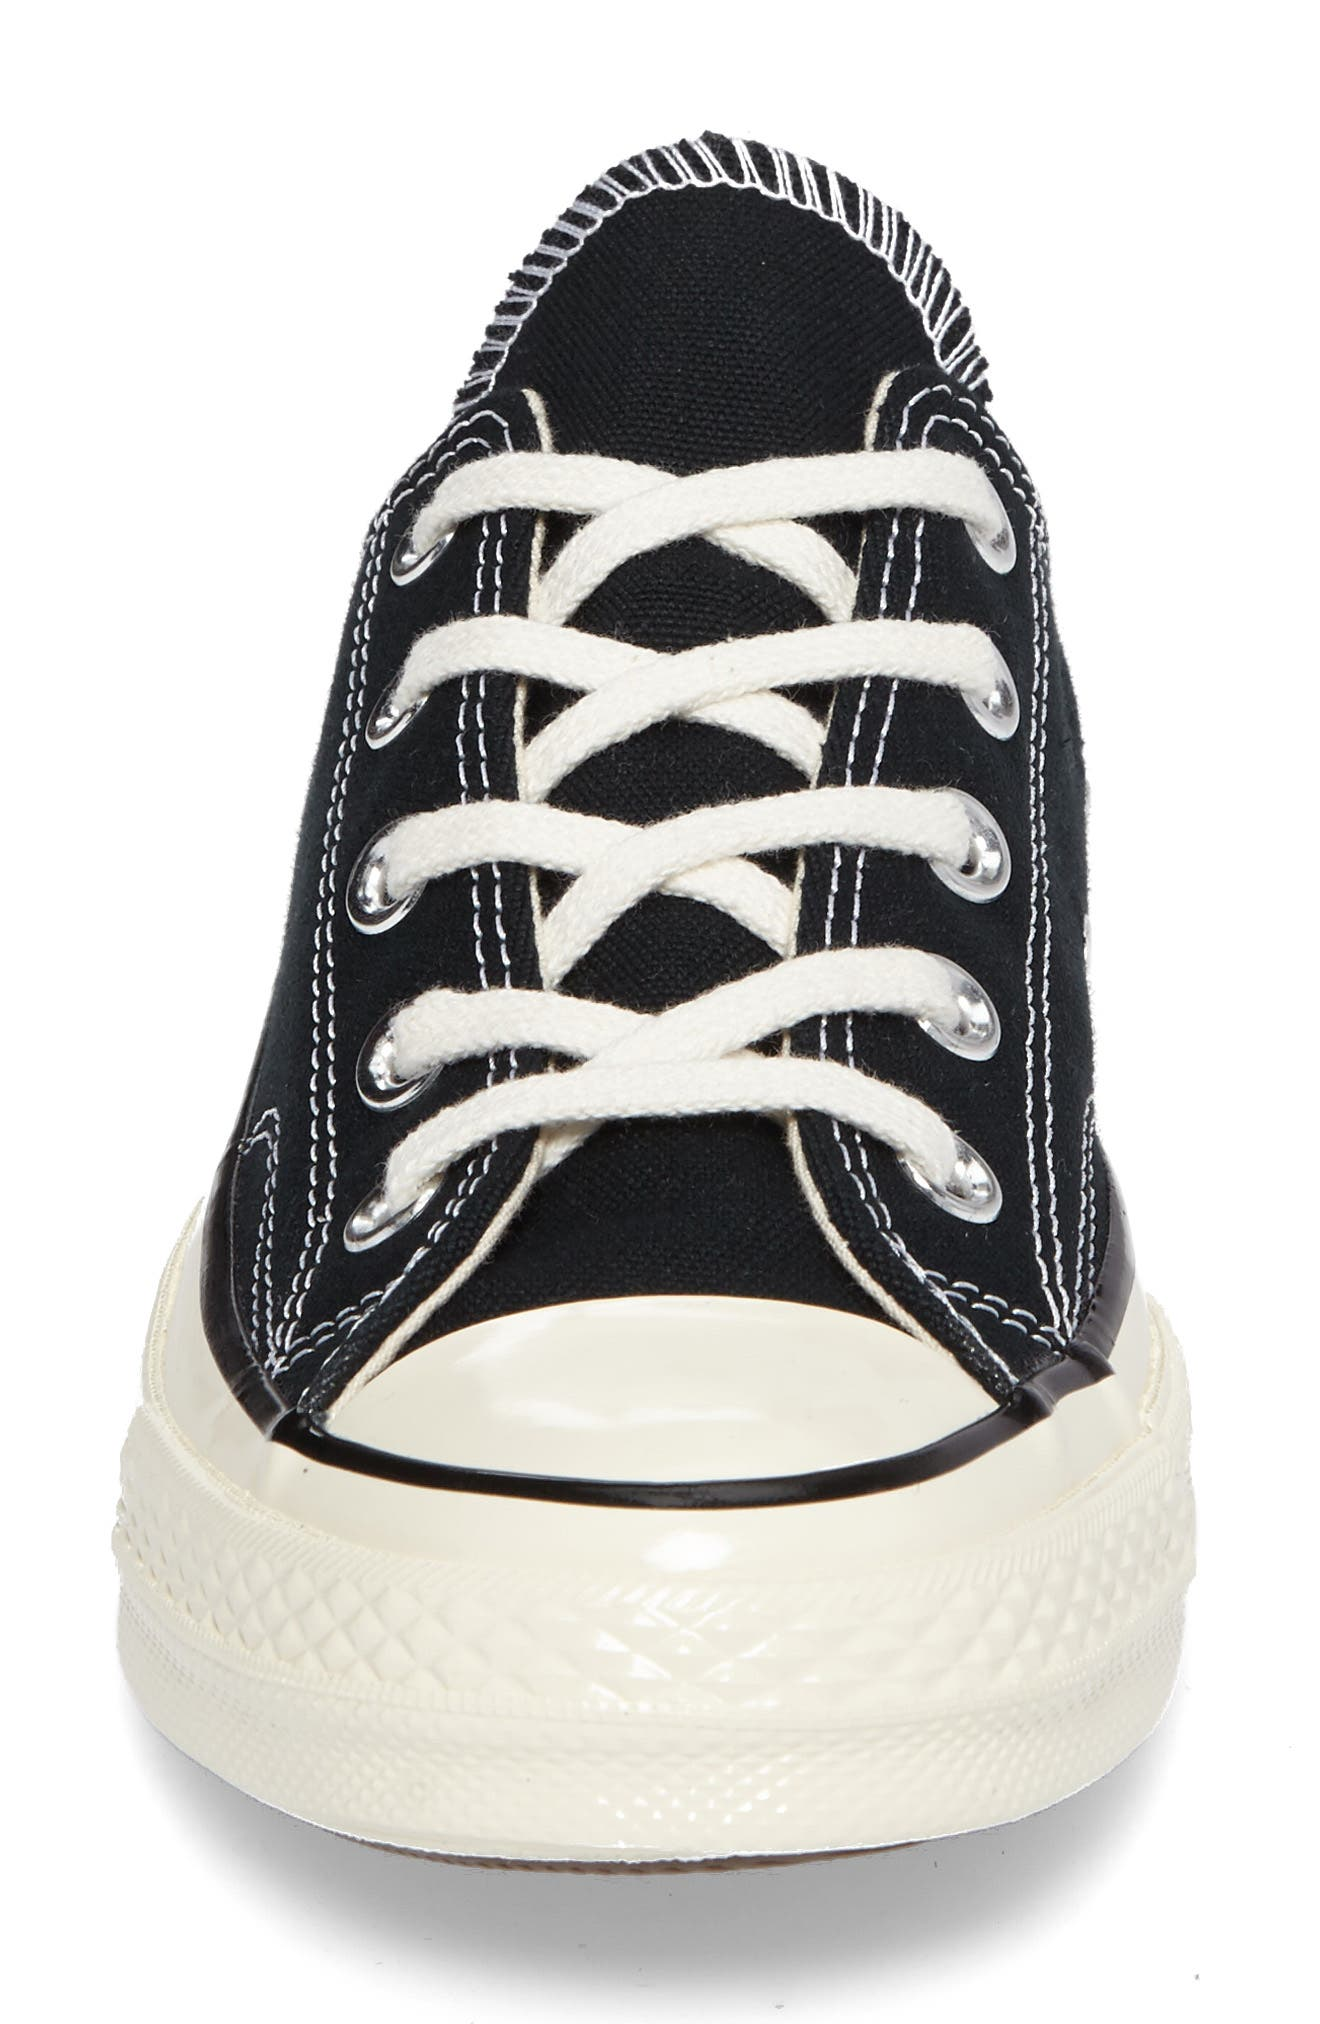 Chuck Taylor<sup>®</sup> All Star<sup>®</sup> Ox Low Top Sneaker,                             Alternate thumbnail 4, color,                             Black